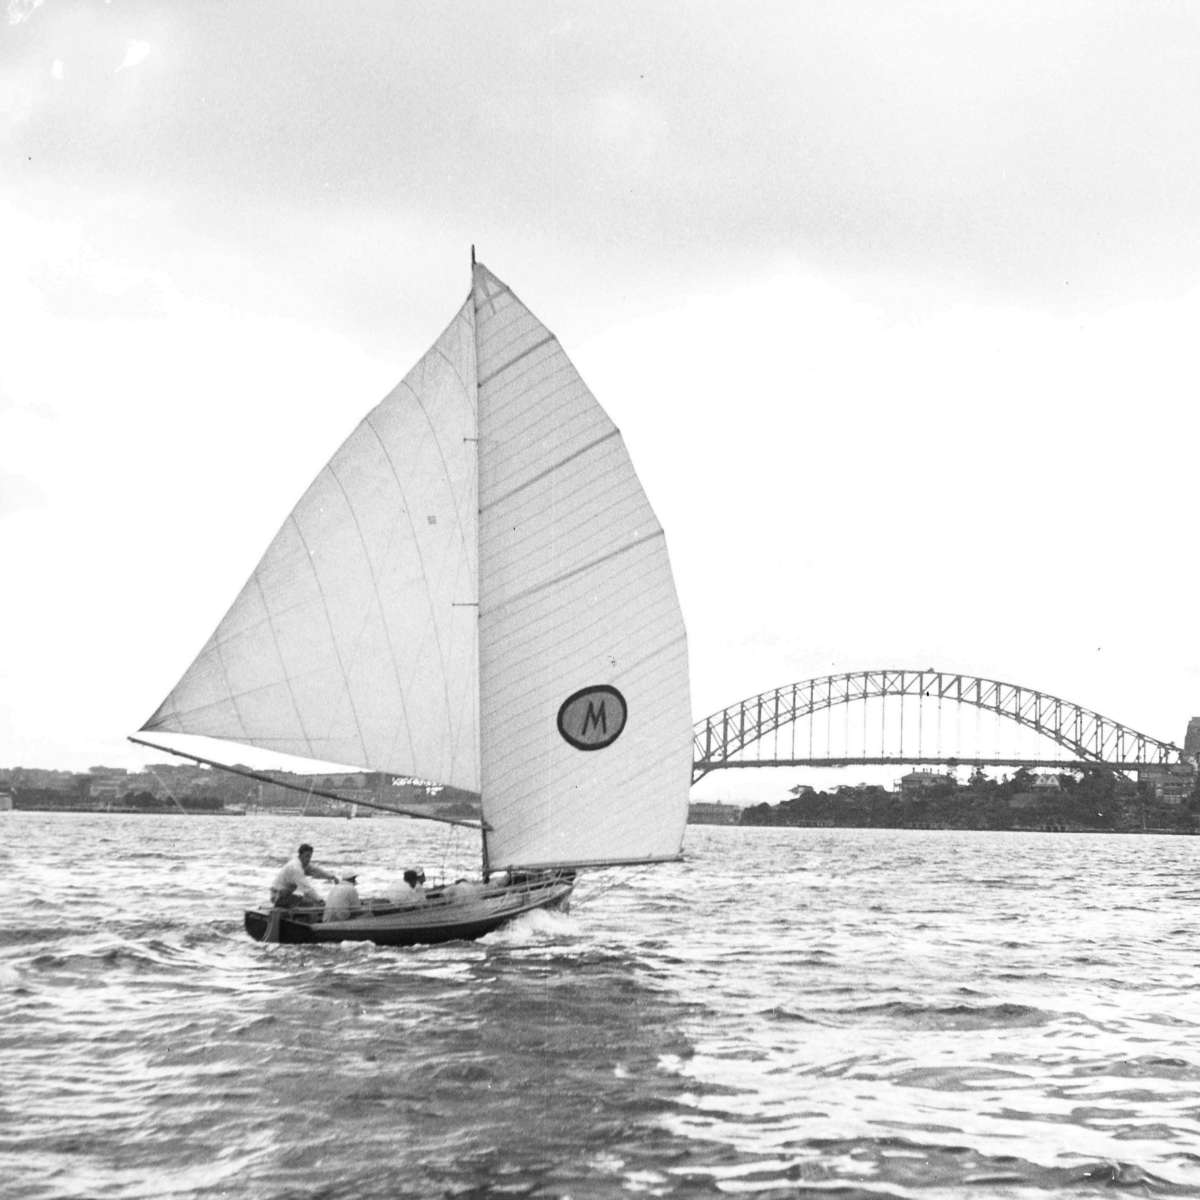 18 footer MYRA TOO on Sydney Harbour, c 1951. William Hall ANMM Collection 00013522